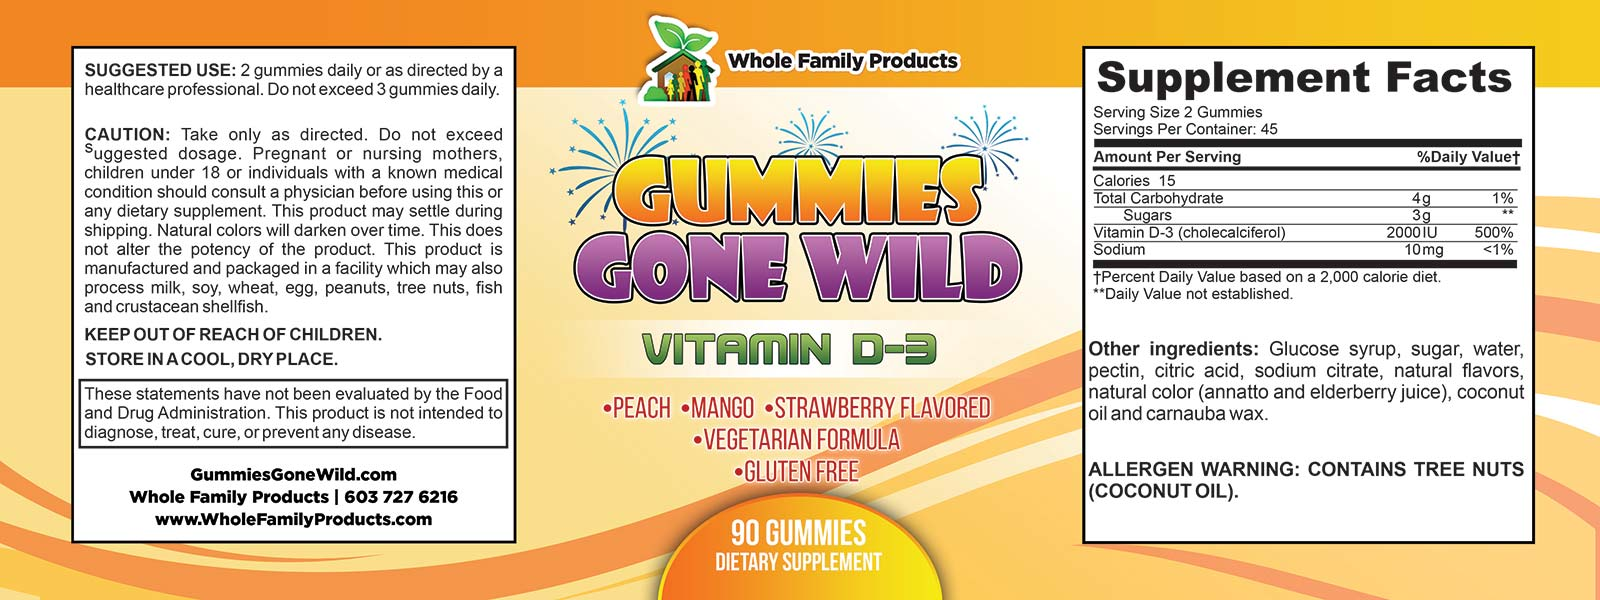 Gummies Gone Wild Vitamin D3